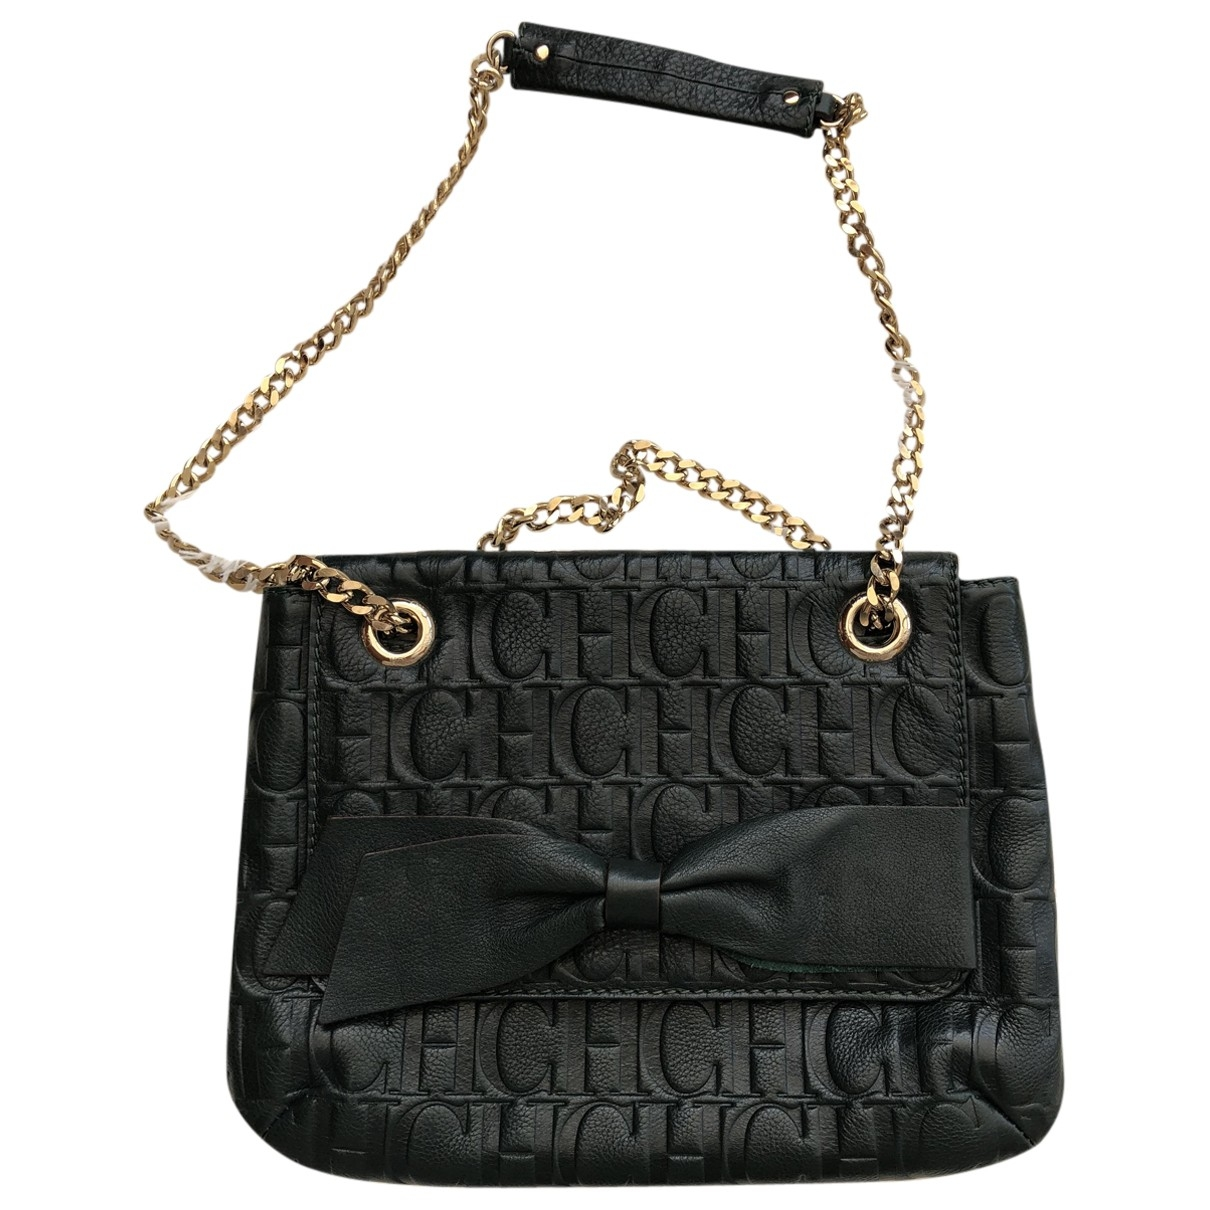 Carolina Herrera \N Green Leather handbag for Women \N